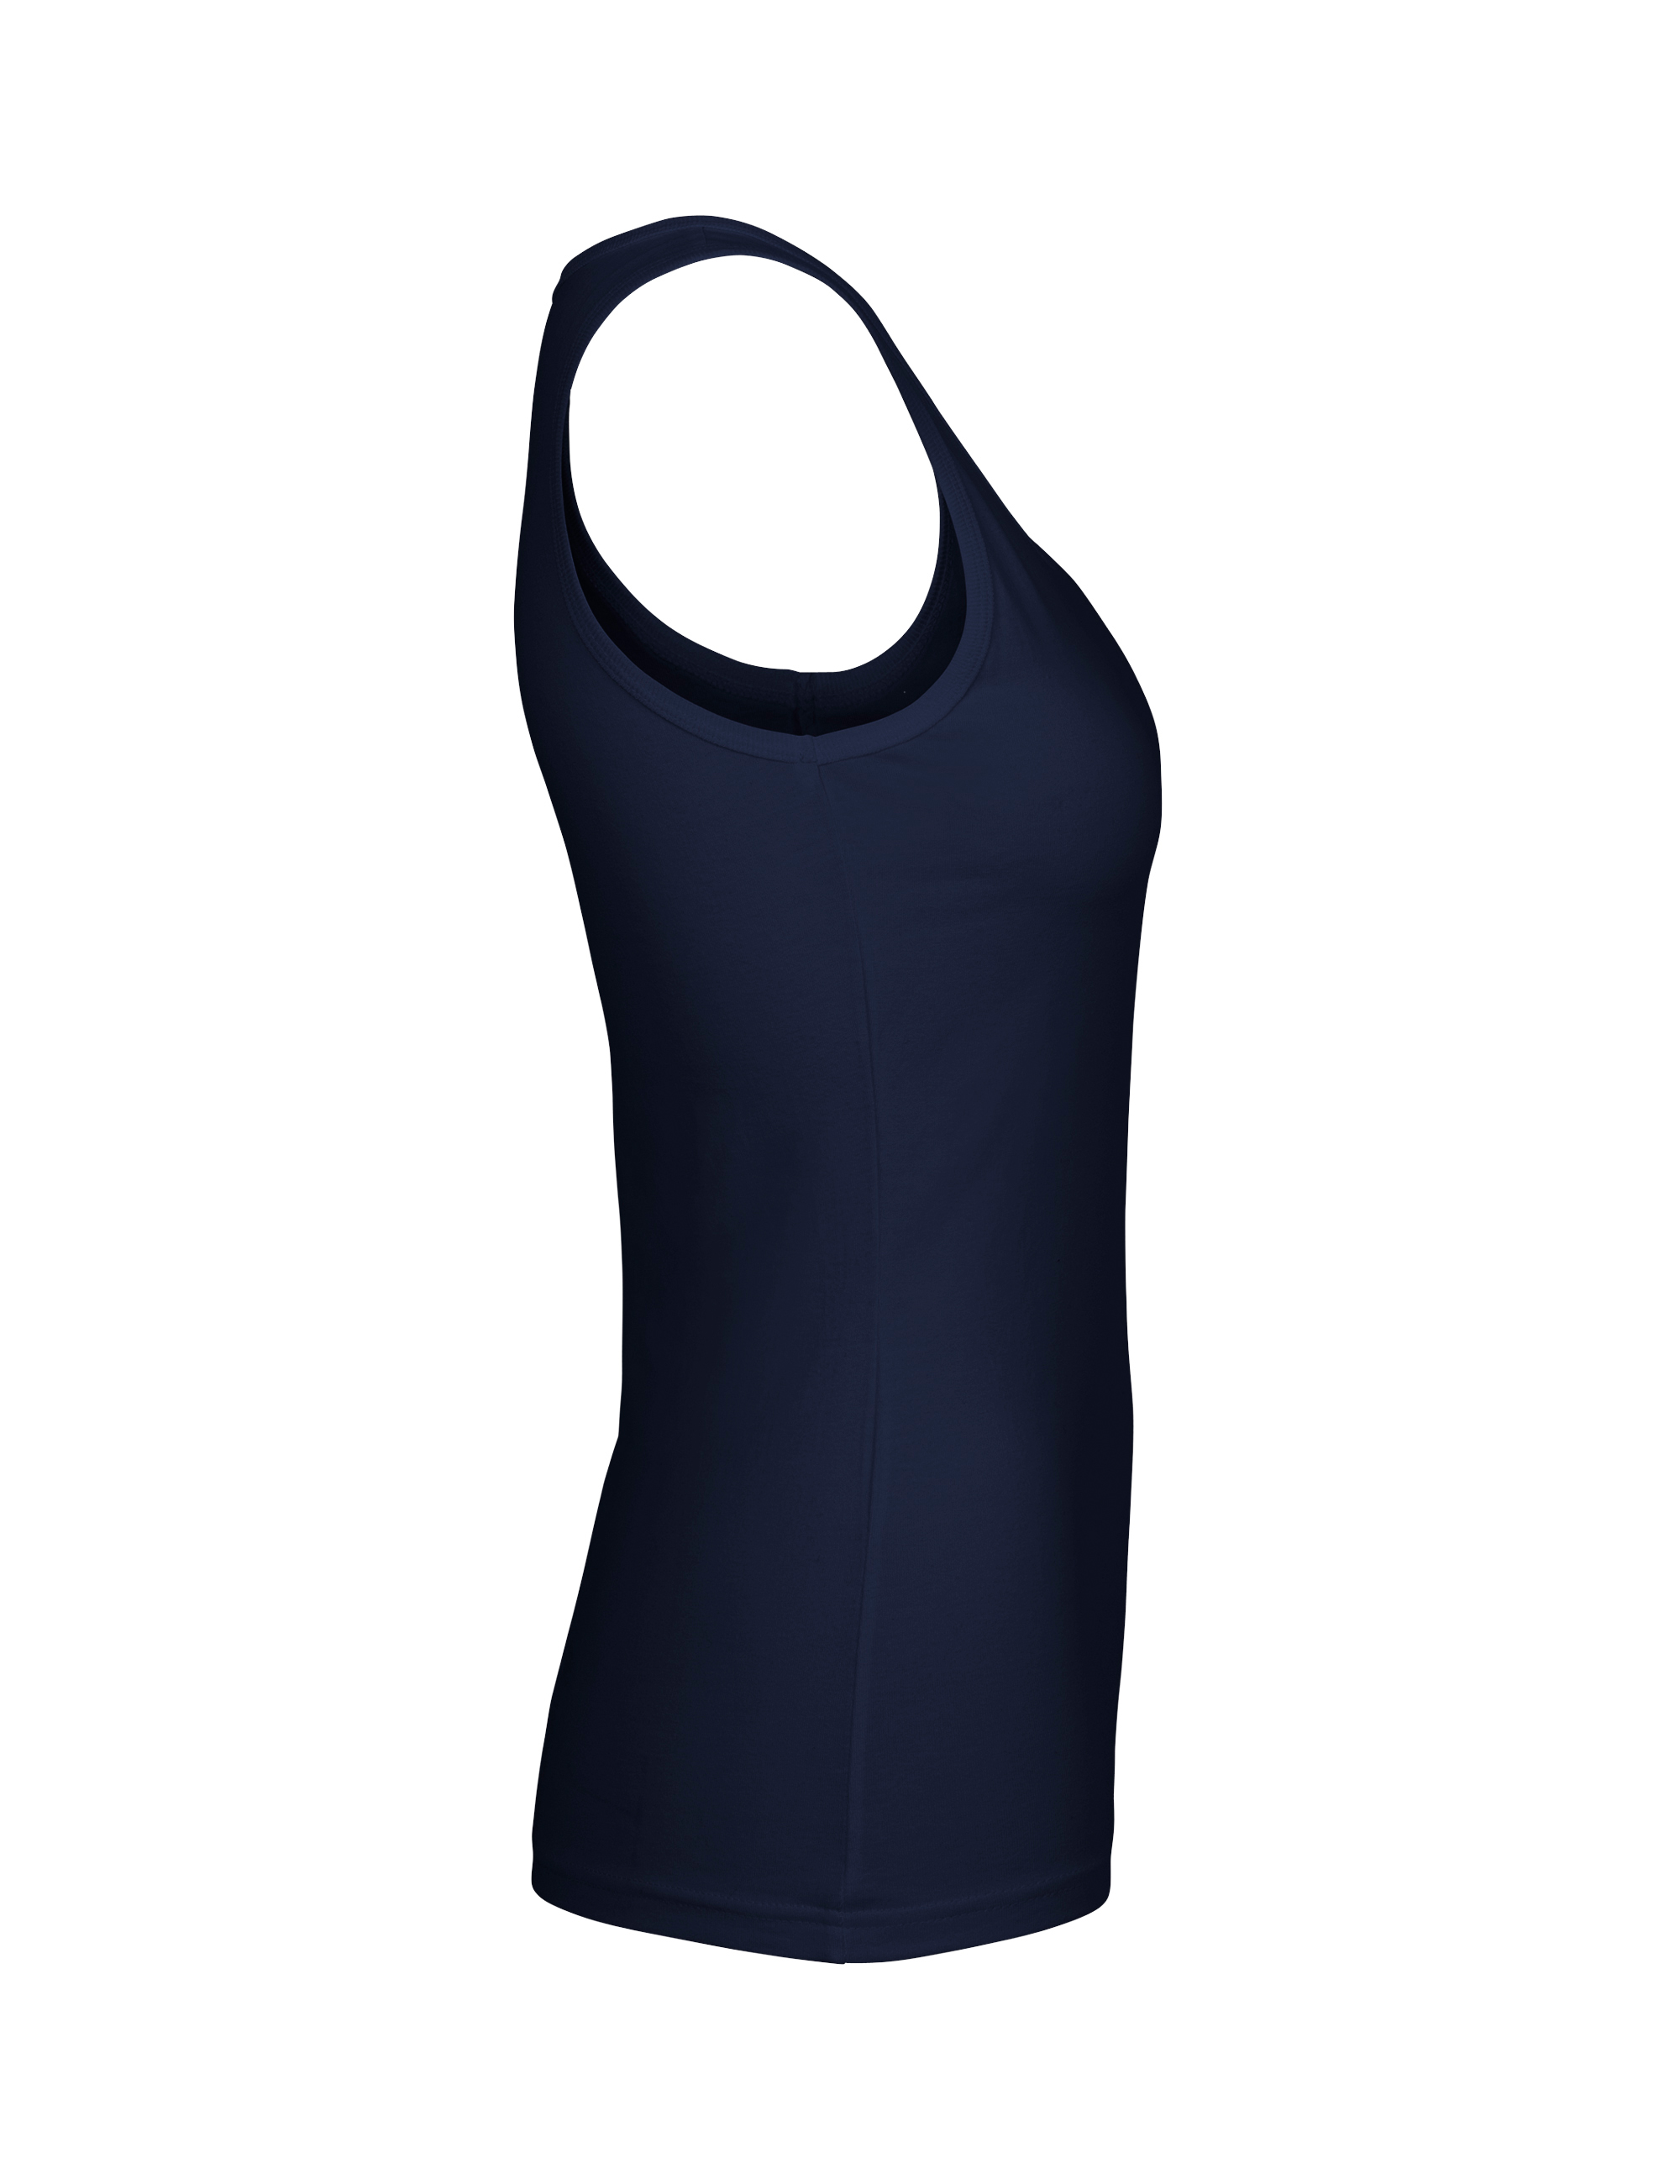 O81300 Ladies Tank Top i Navy